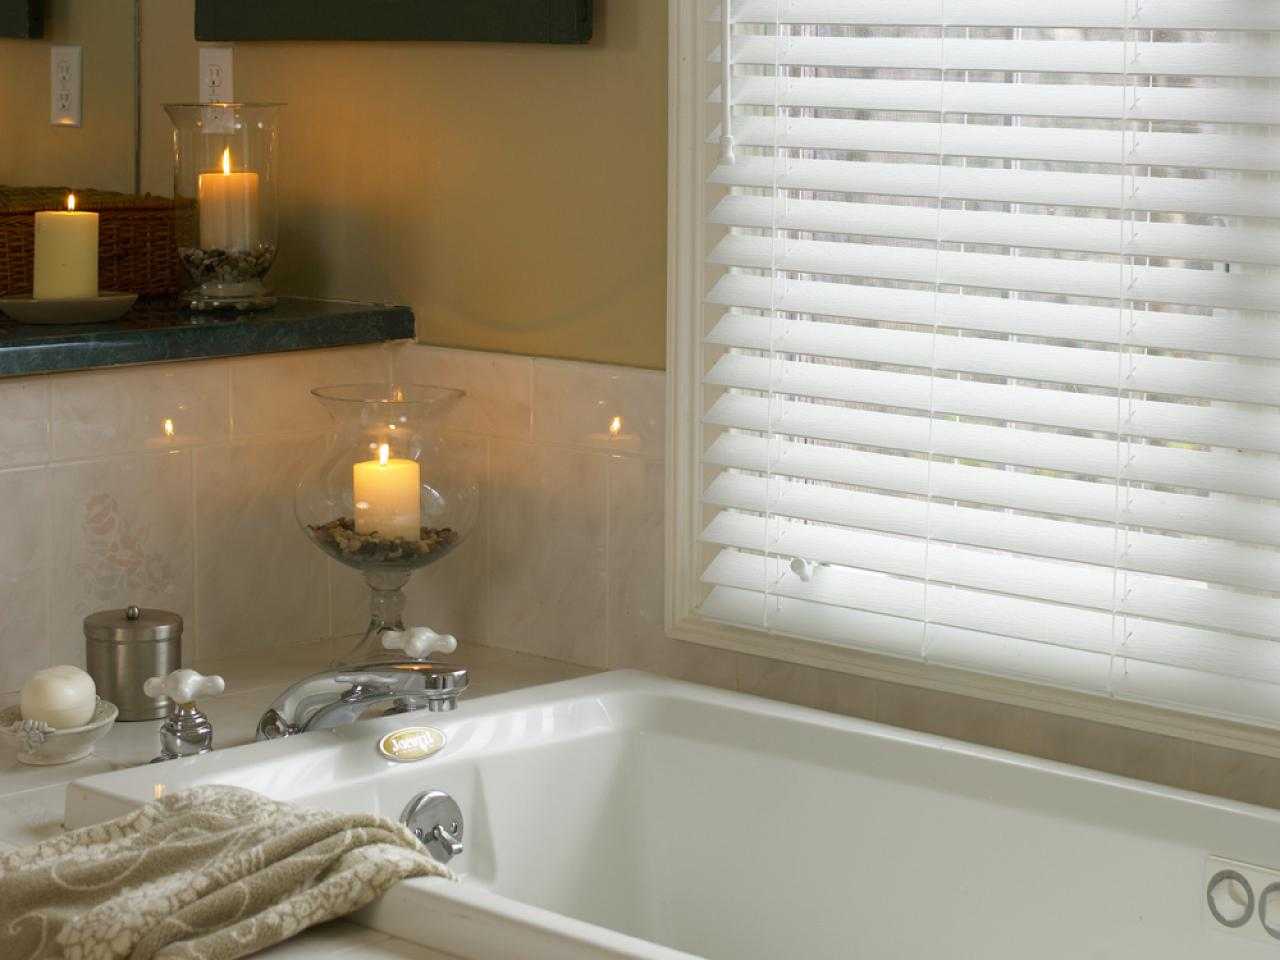 Wood window treatments interior design explained for What type of blinds for bathroom